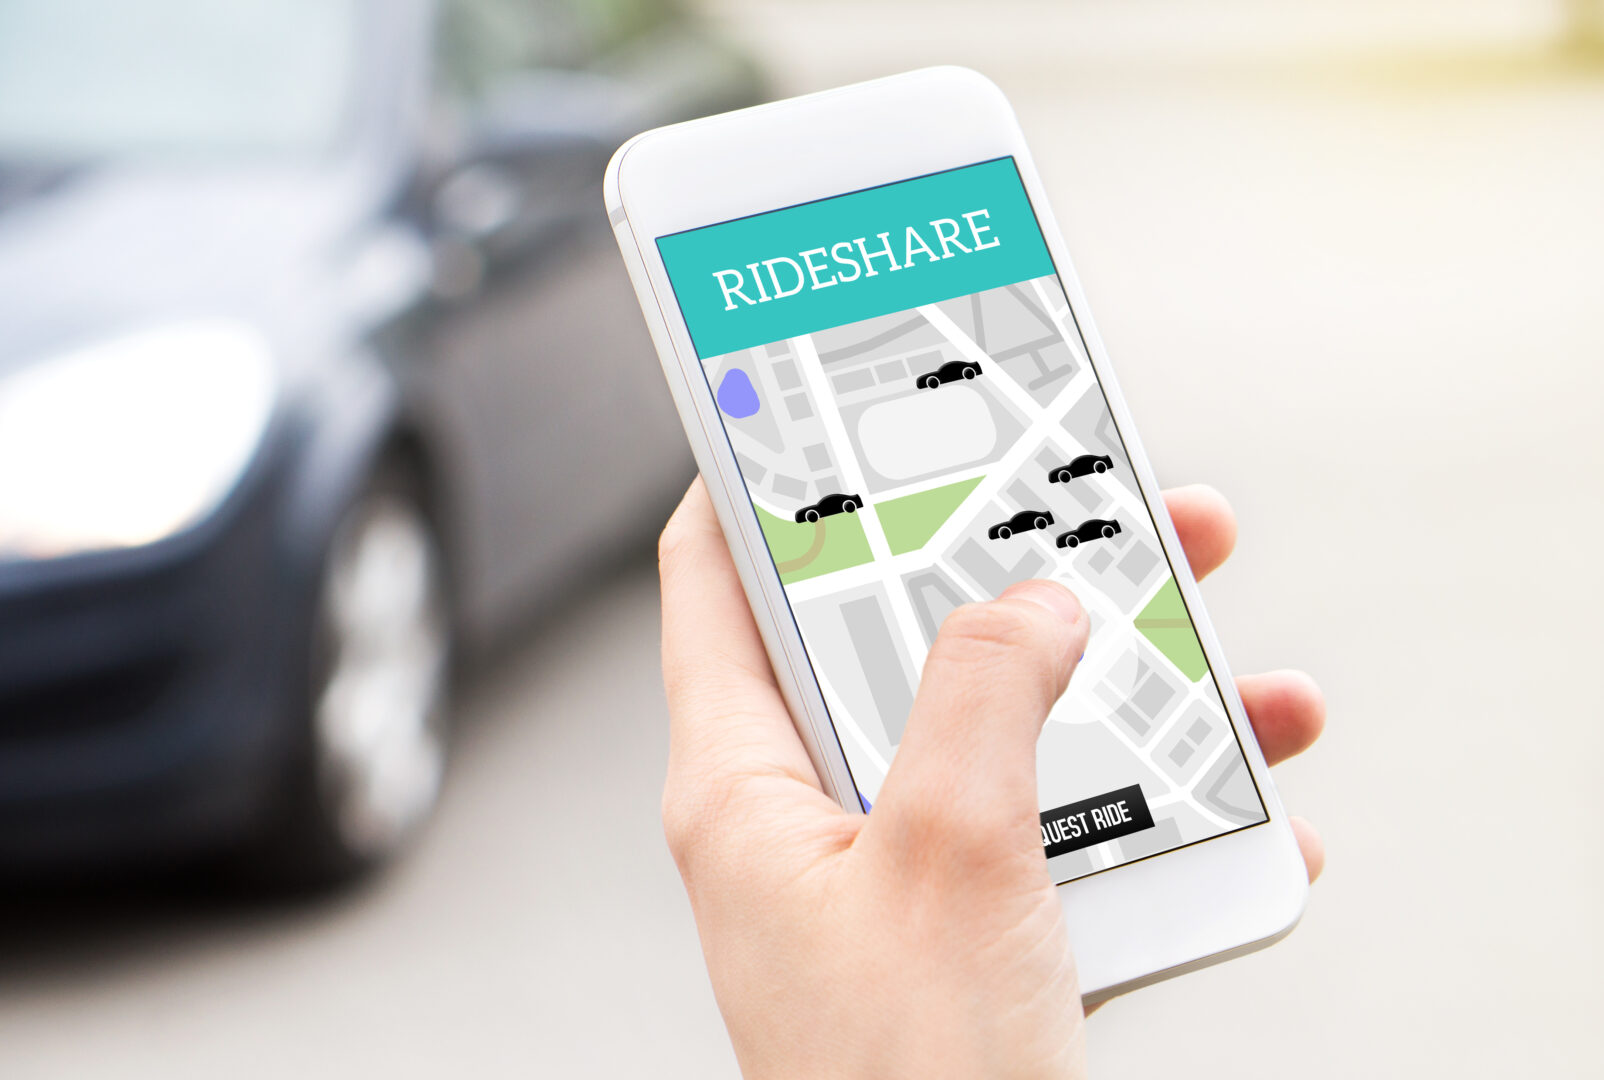 A smartphone with the Rideshare app open